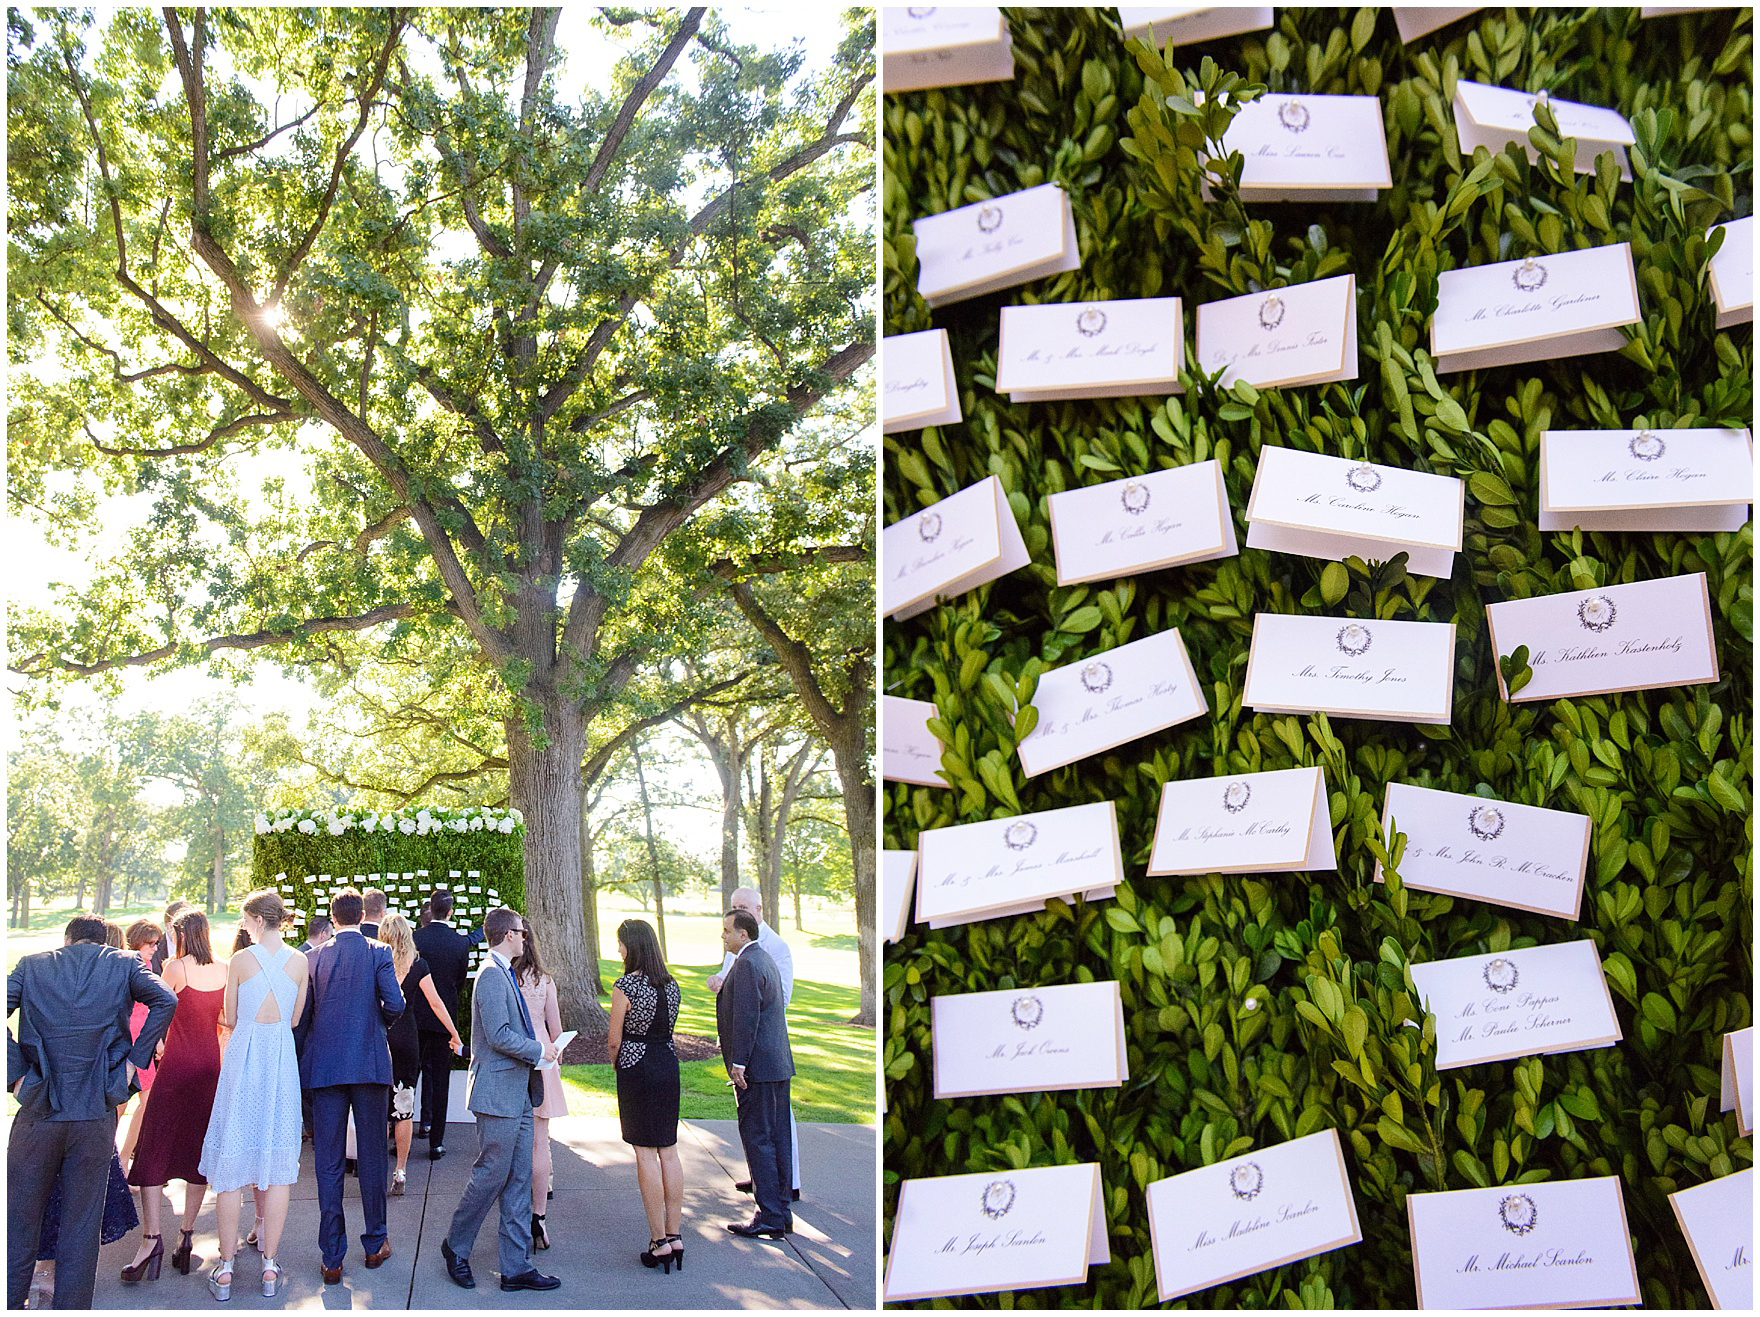 Guests pick up their escort cards from a boxwood display  during a Butterfield Country Club wedding.